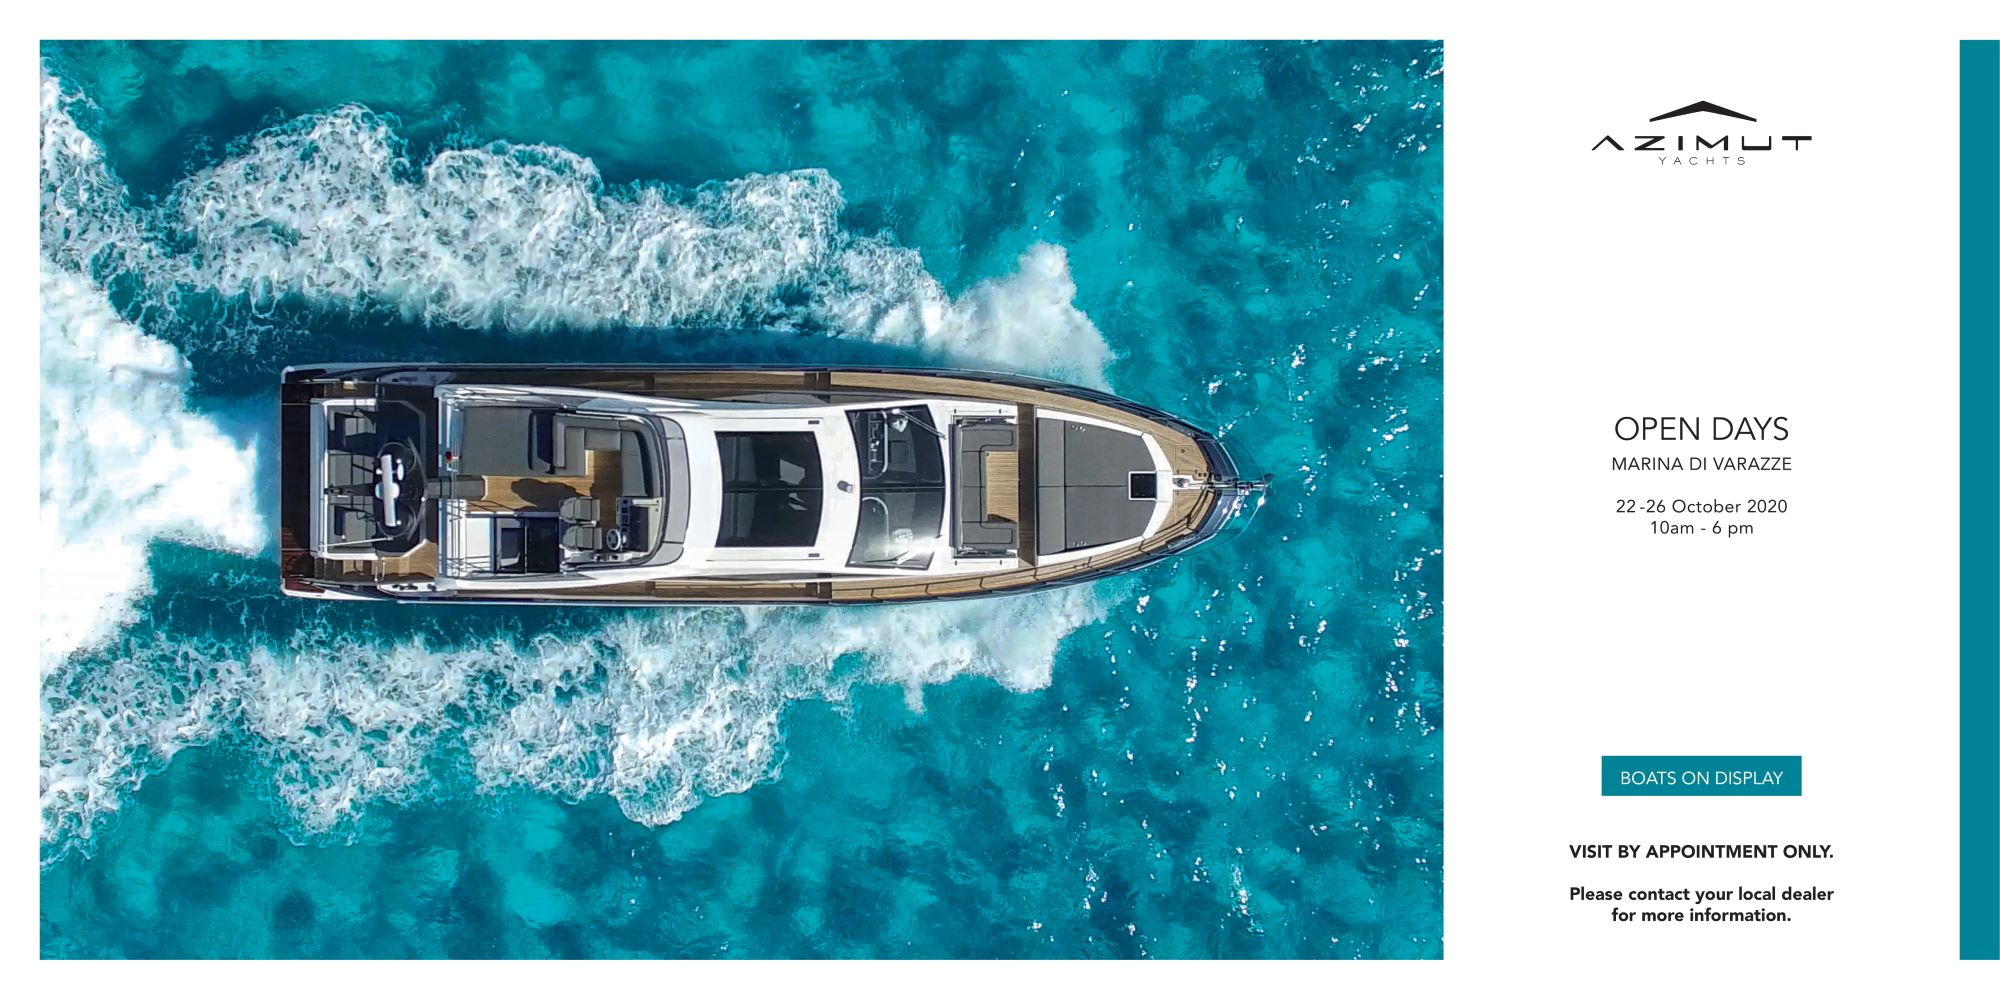 PRIVATE BOAT SHOW VARAZZE 2020